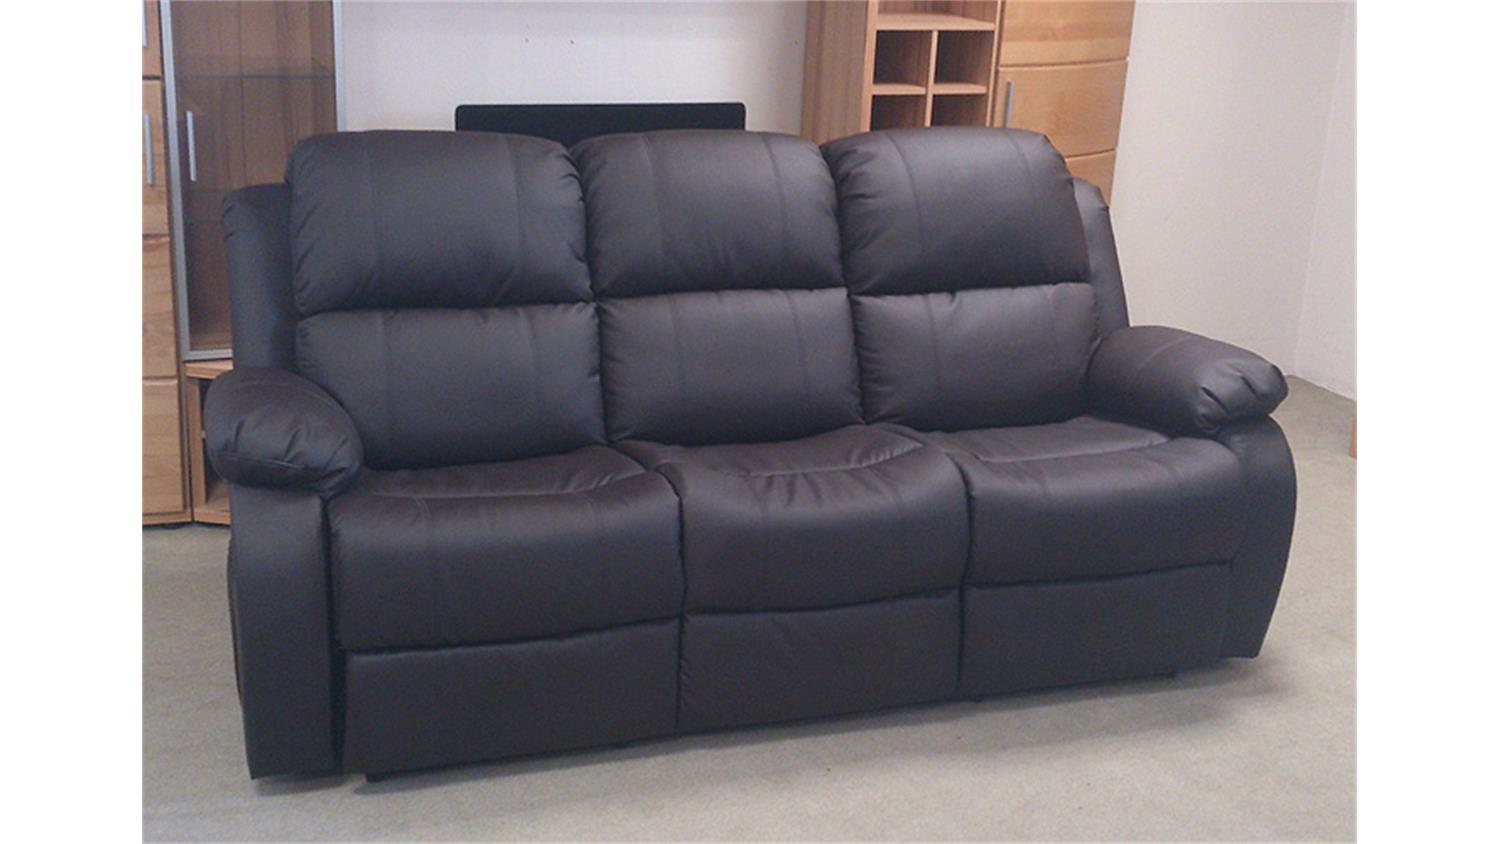 tokio schlafsofa bettsofa schlafcouch sofa bettcouch. Black Bedroom Furniture Sets. Home Design Ideas